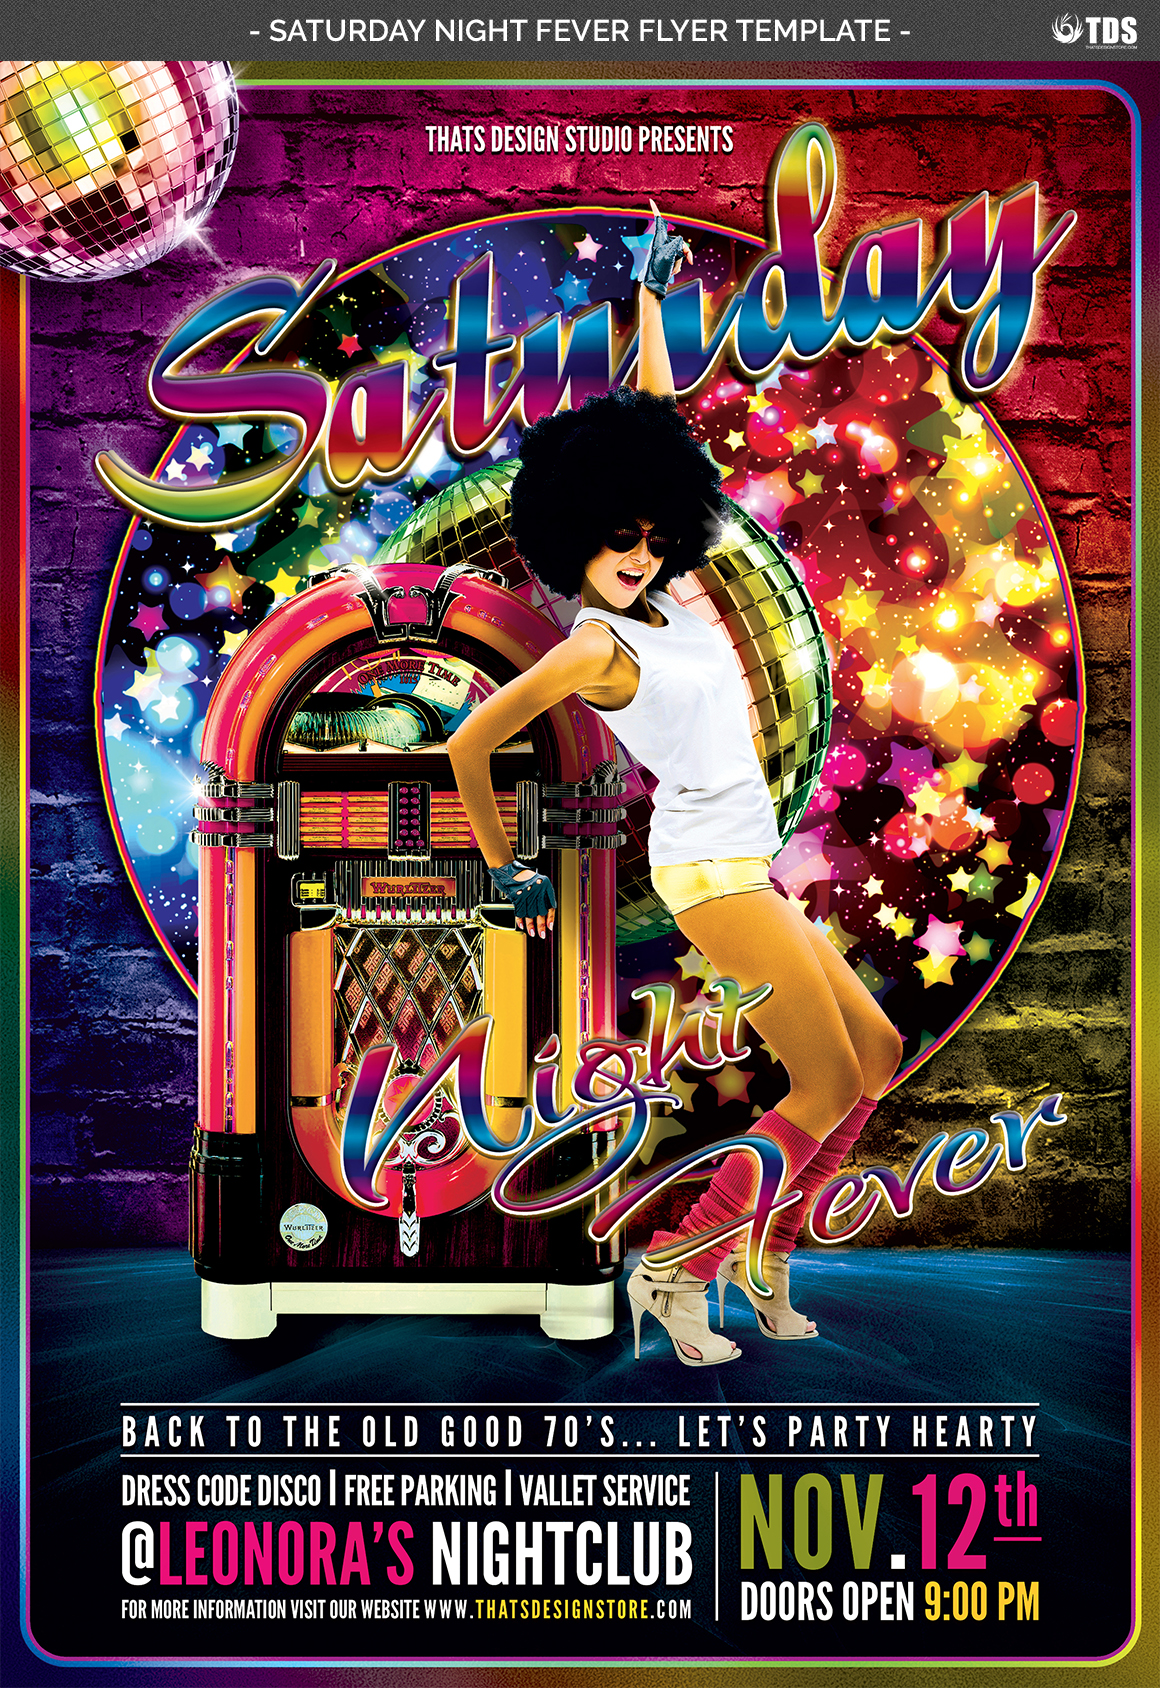 Saturday Night Fever Flyer Template example image 3